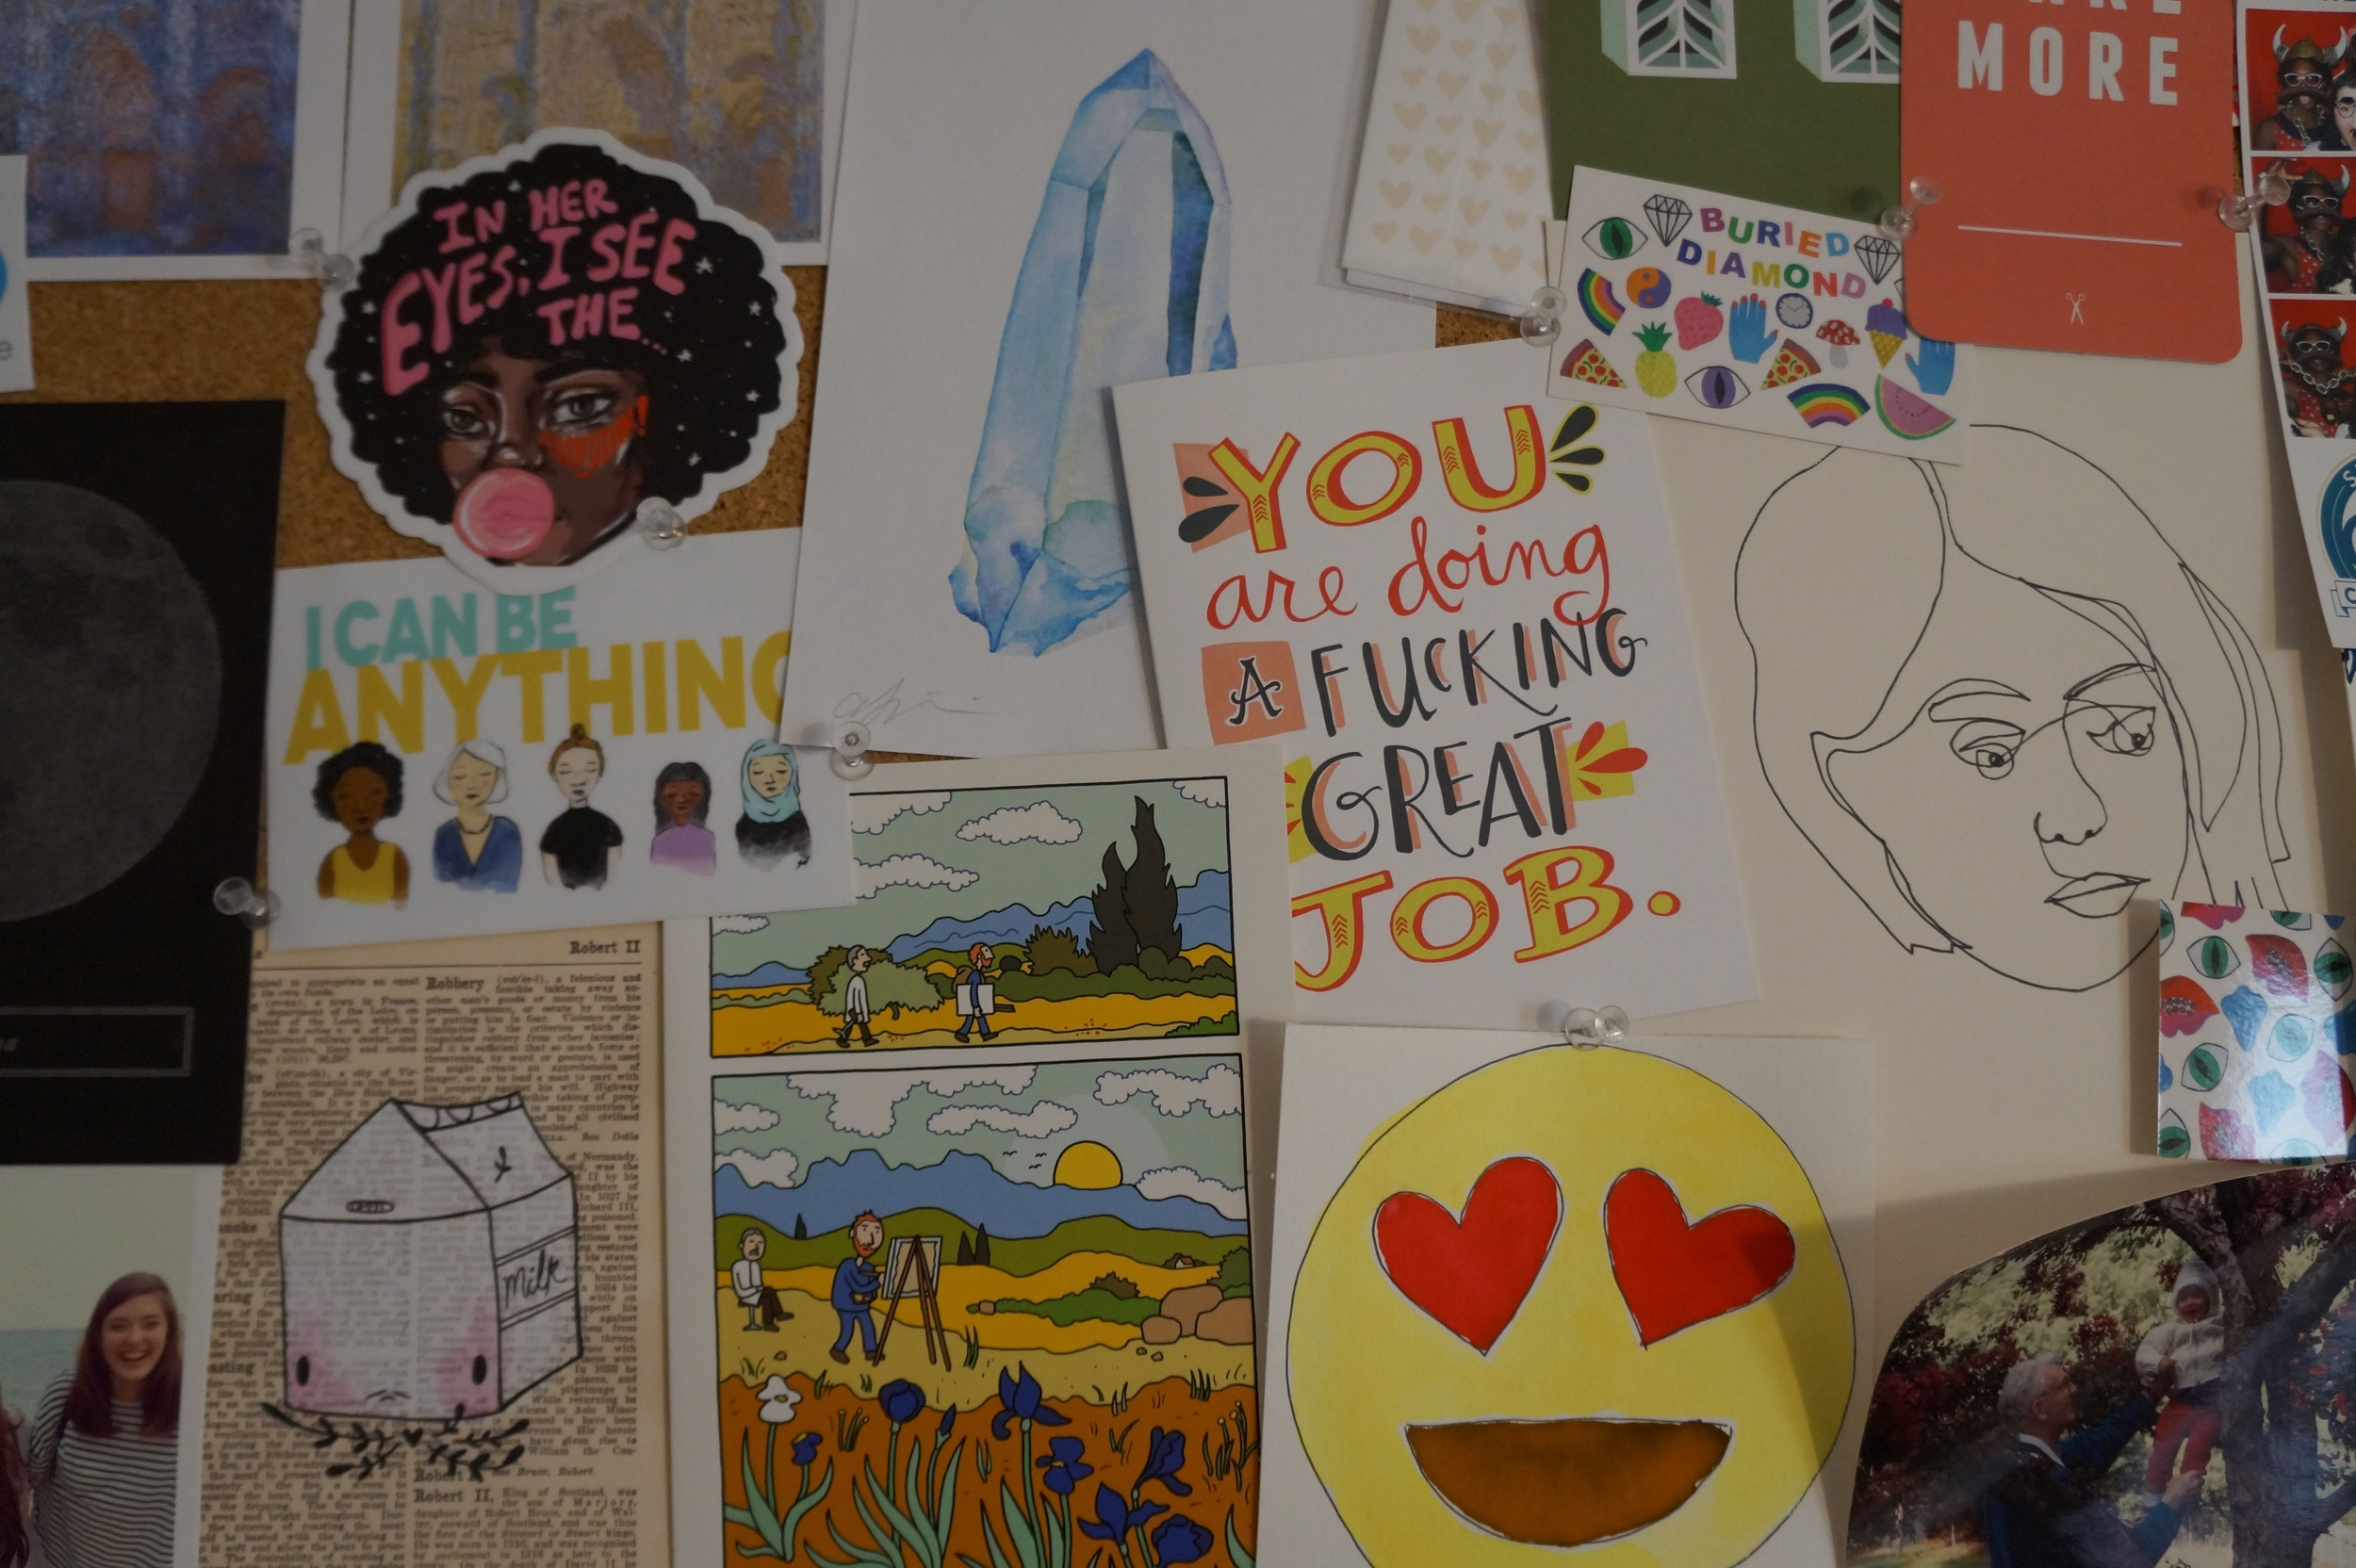 Inspiration board close up